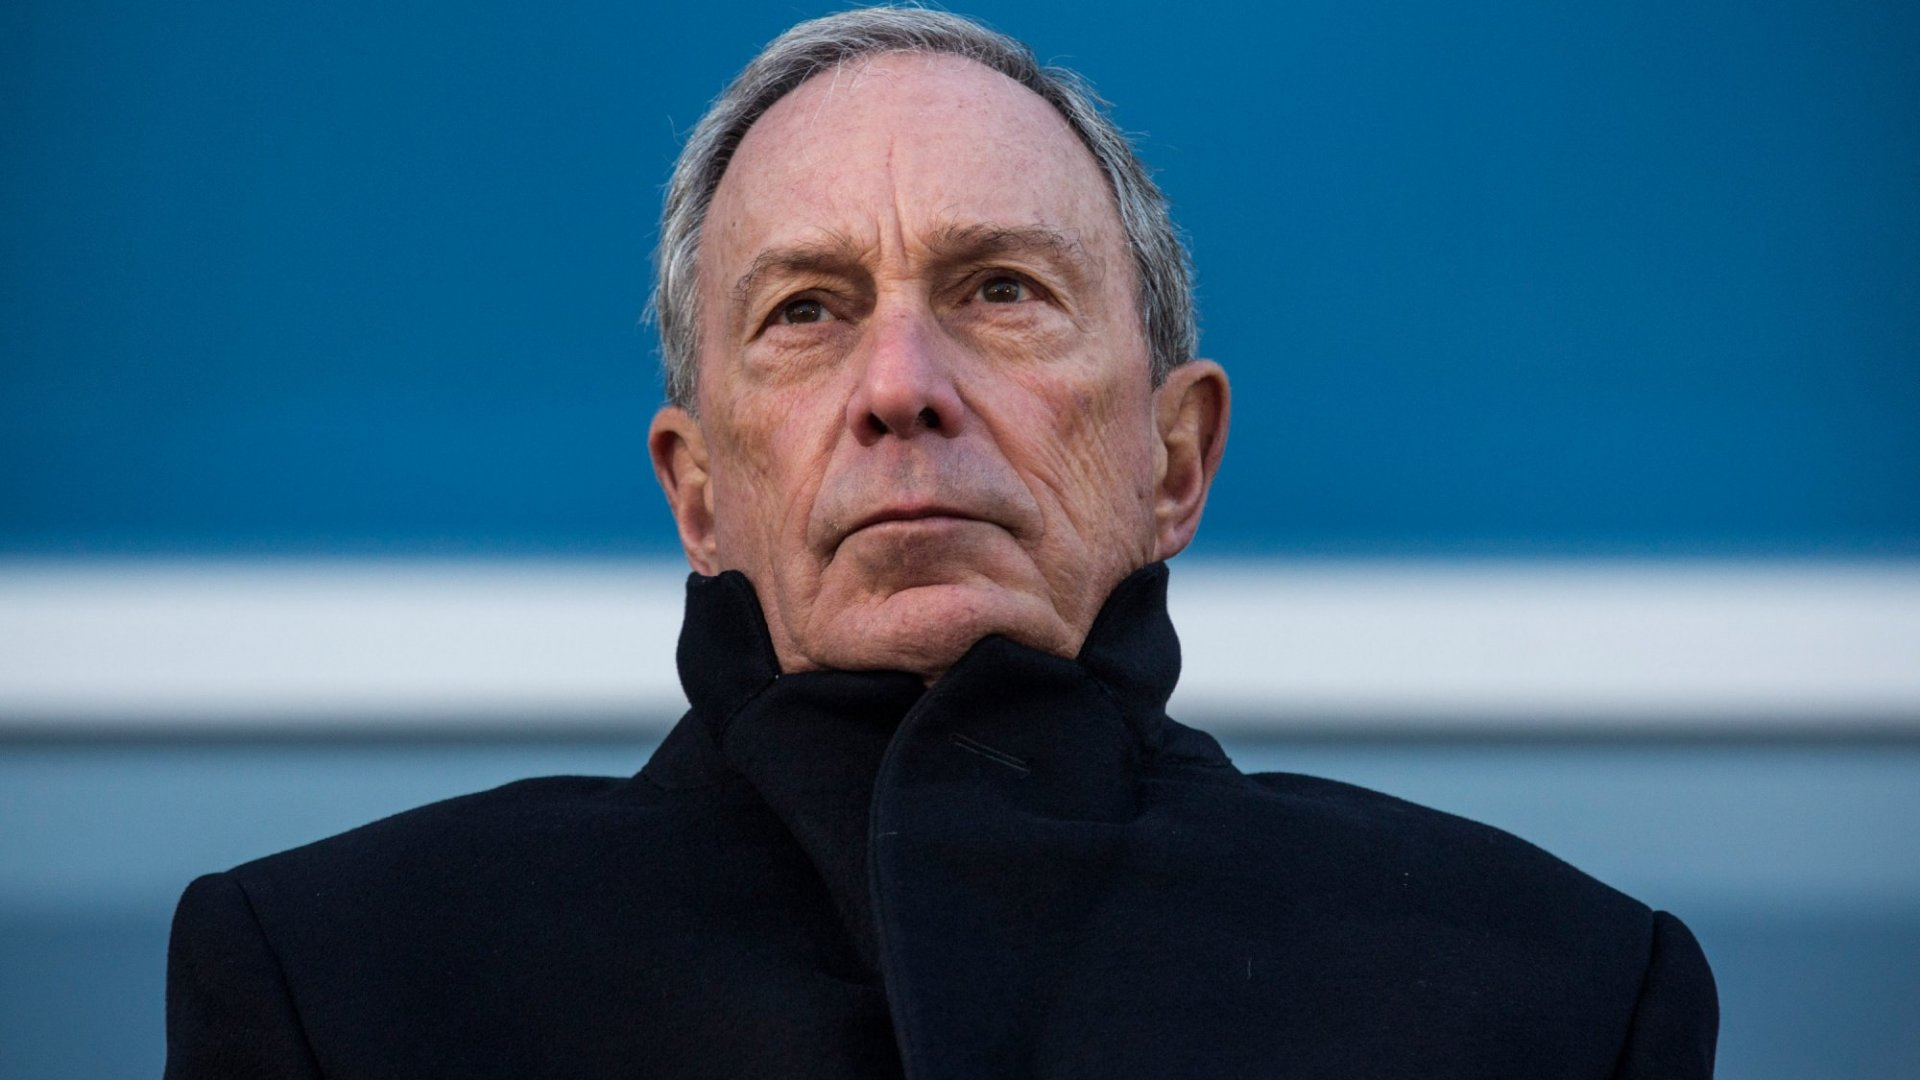 Billionaire and Former New York City Mayor Michael Bloomberg Has Entered the 2020 Presidential Race